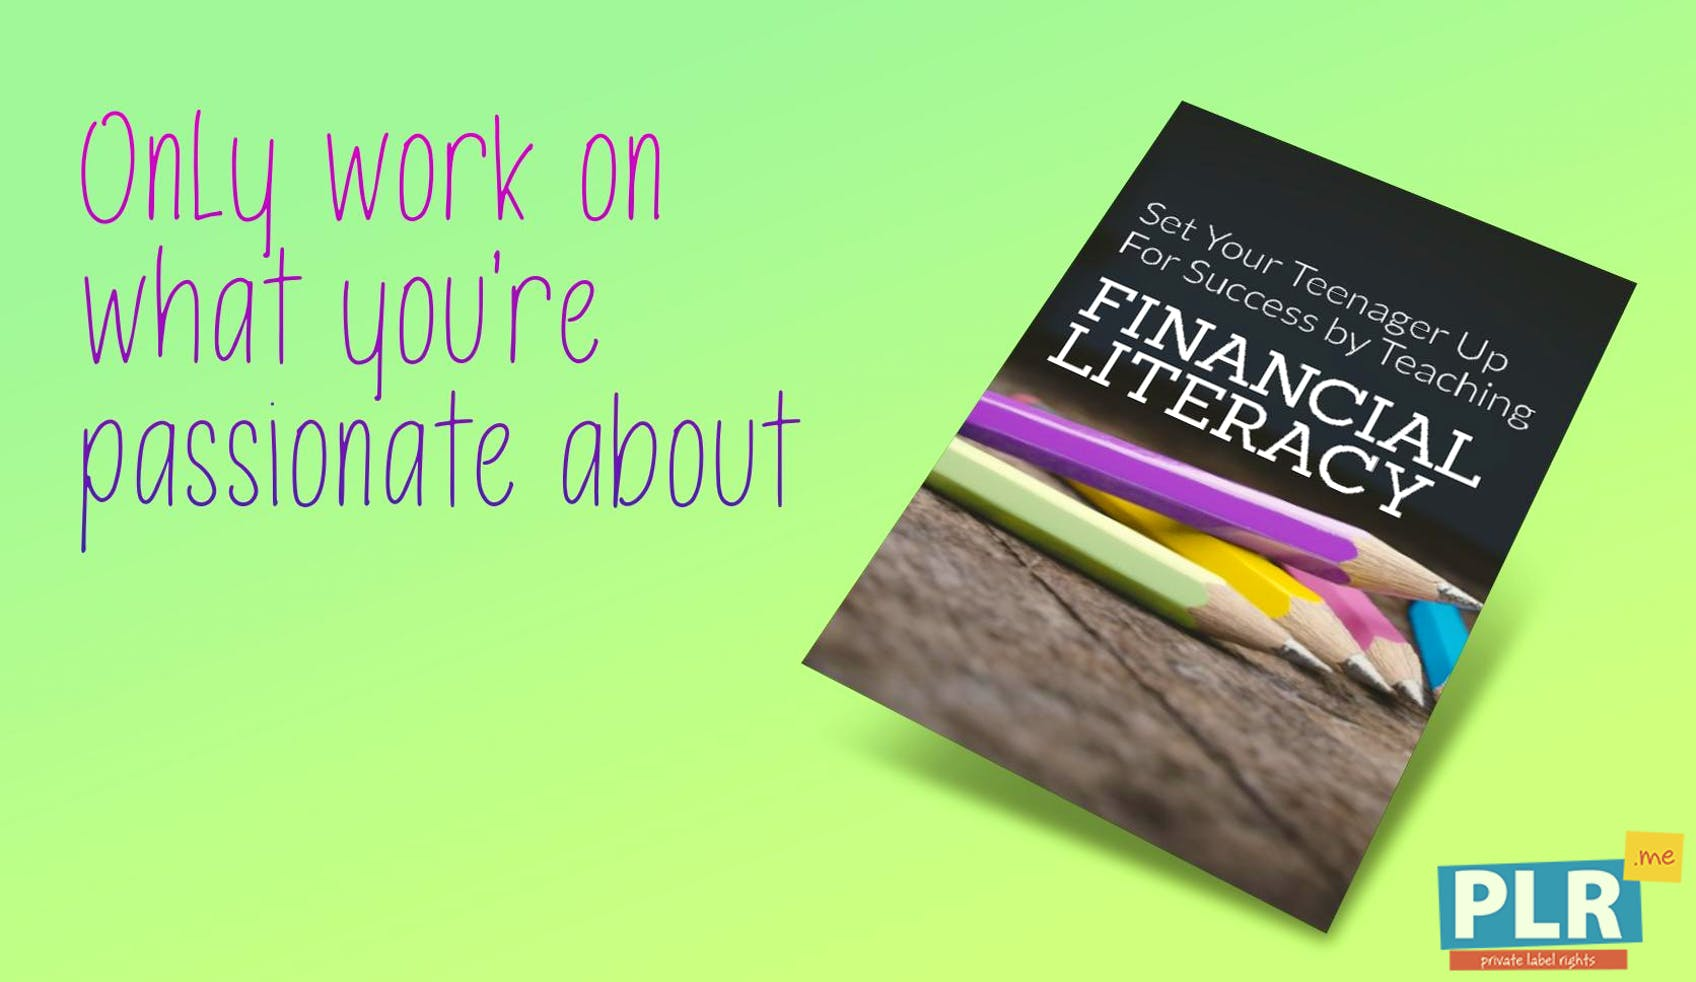 Set Your Teenager Up For Success By Teaching Financial Literacy